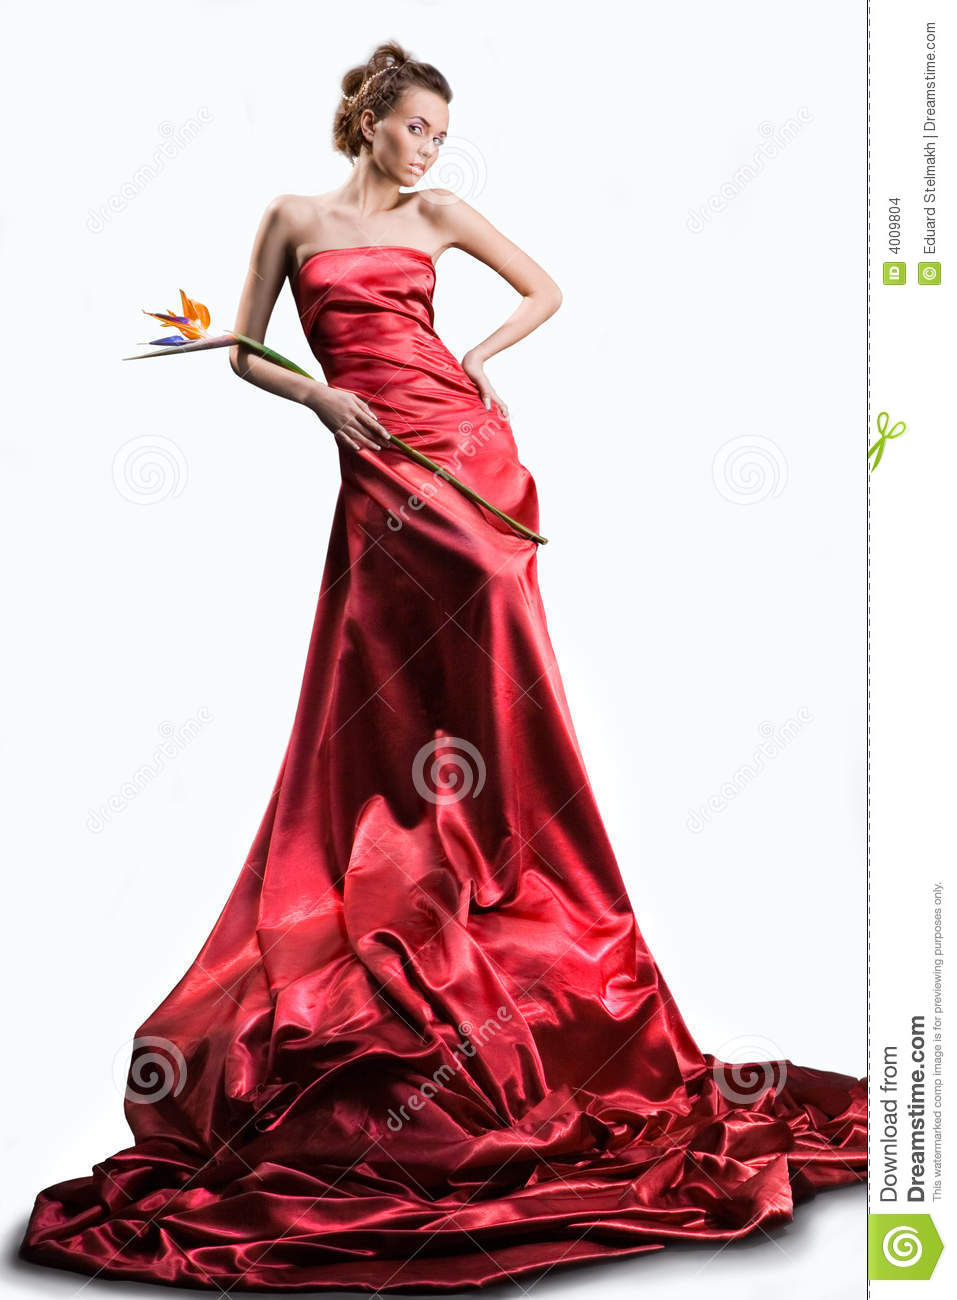 Girl s red dress